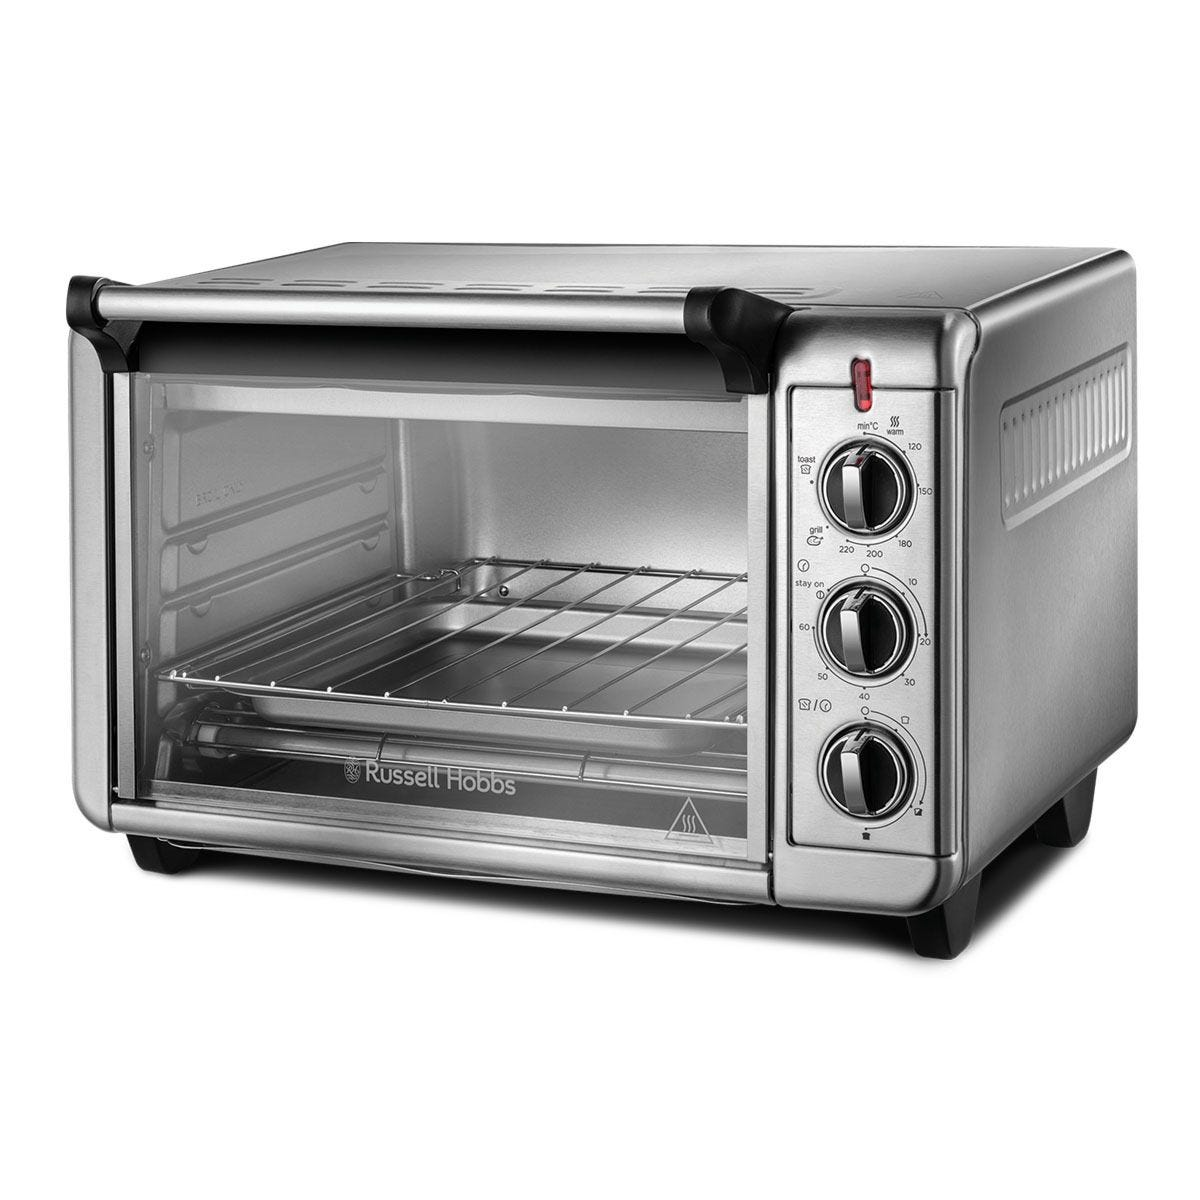 Russell Hobbs 26090 Express 1500W 12.6L Mini Oven - Silver